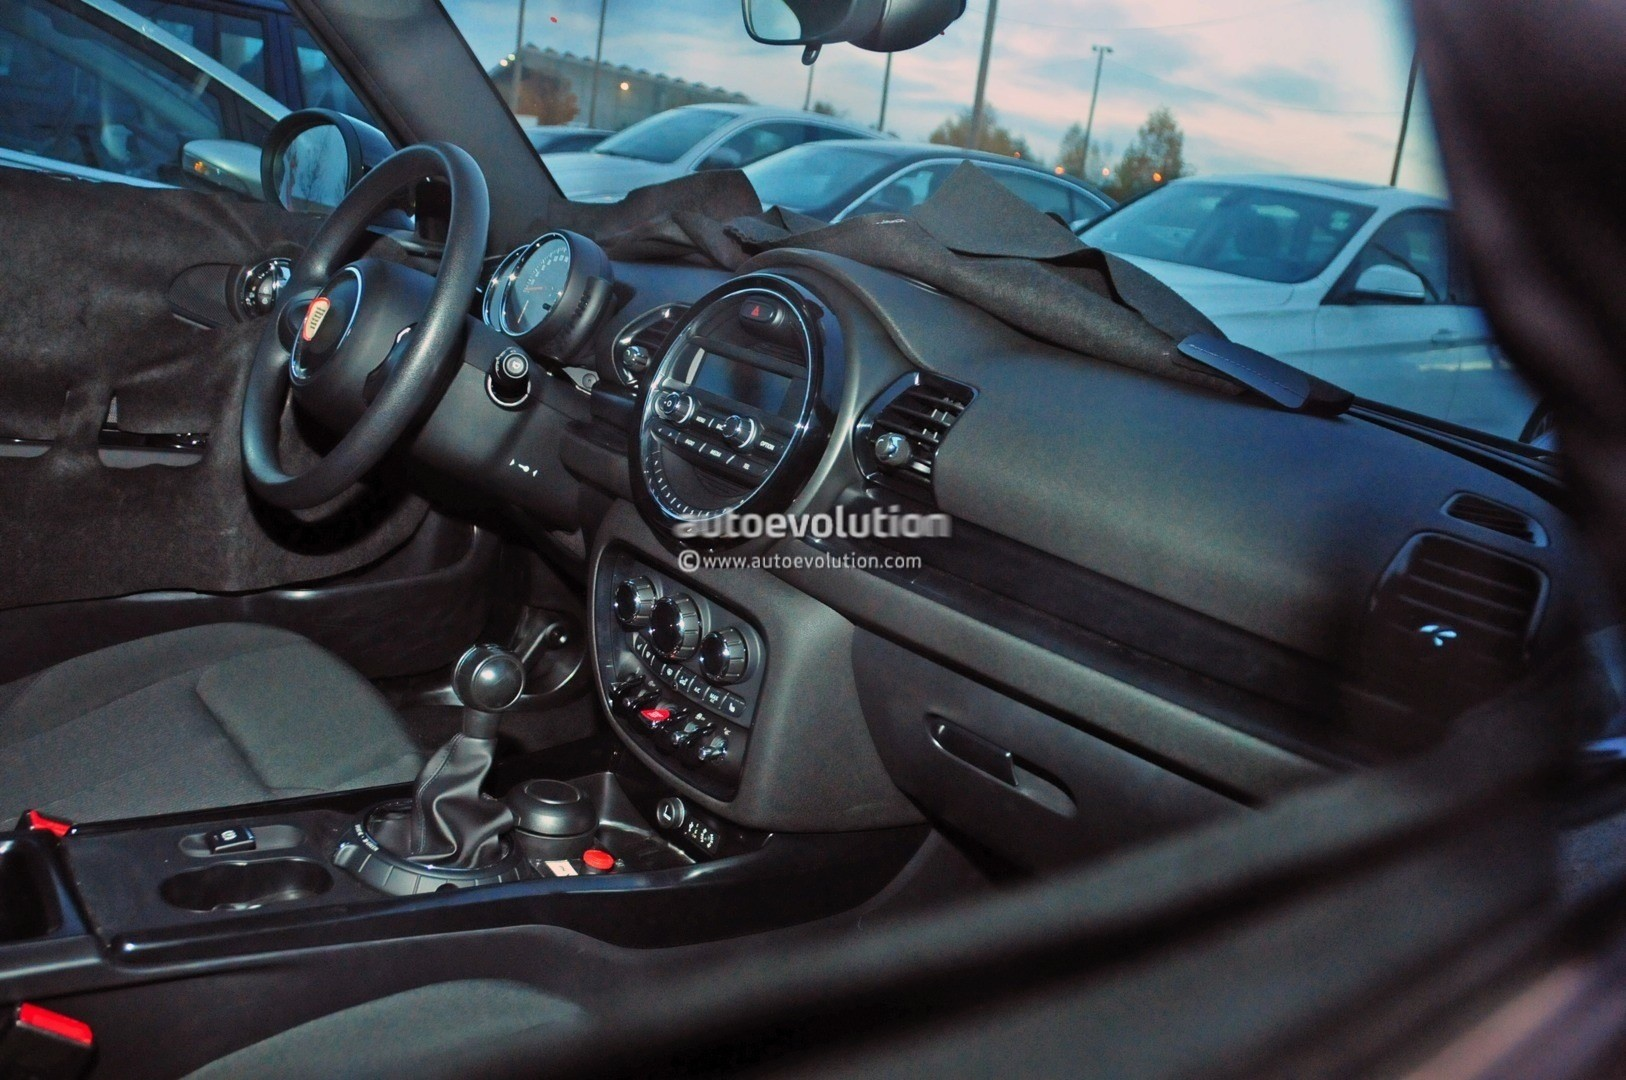 2016 MINI Clubman Spyshots Show New Interior - autoevolution